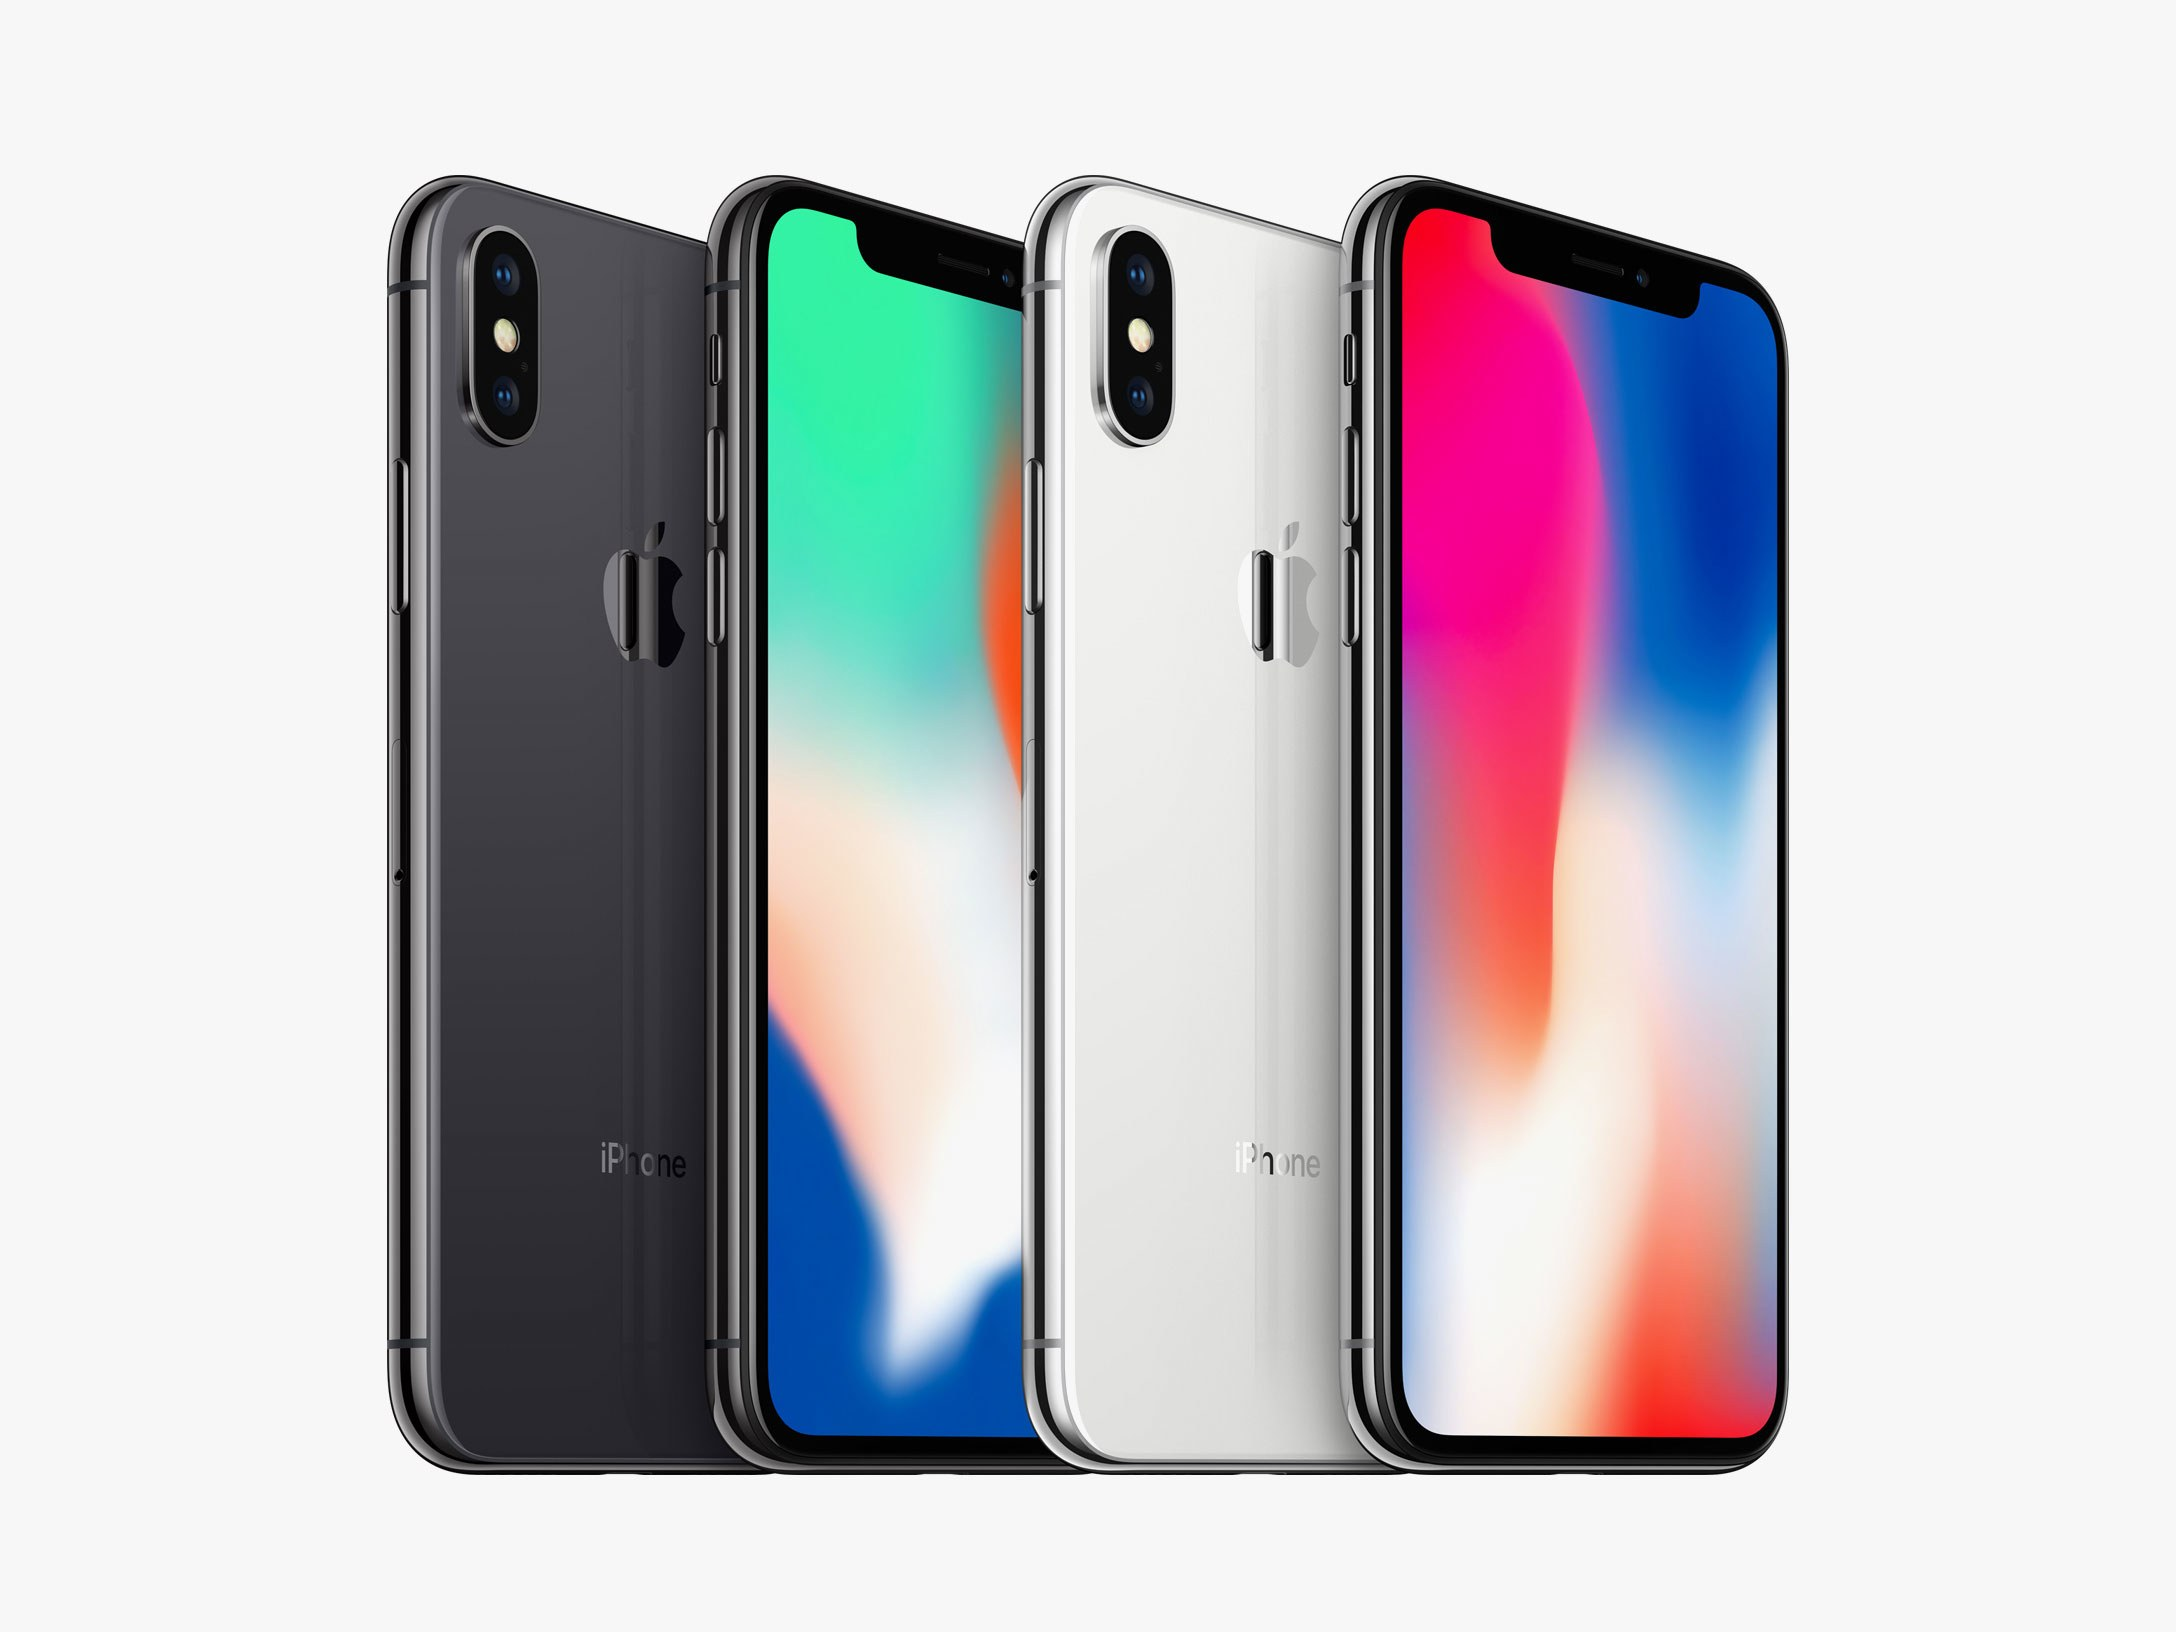 Expect 'Potentially Simpler' iPhone Branding in 2018 and Beyond